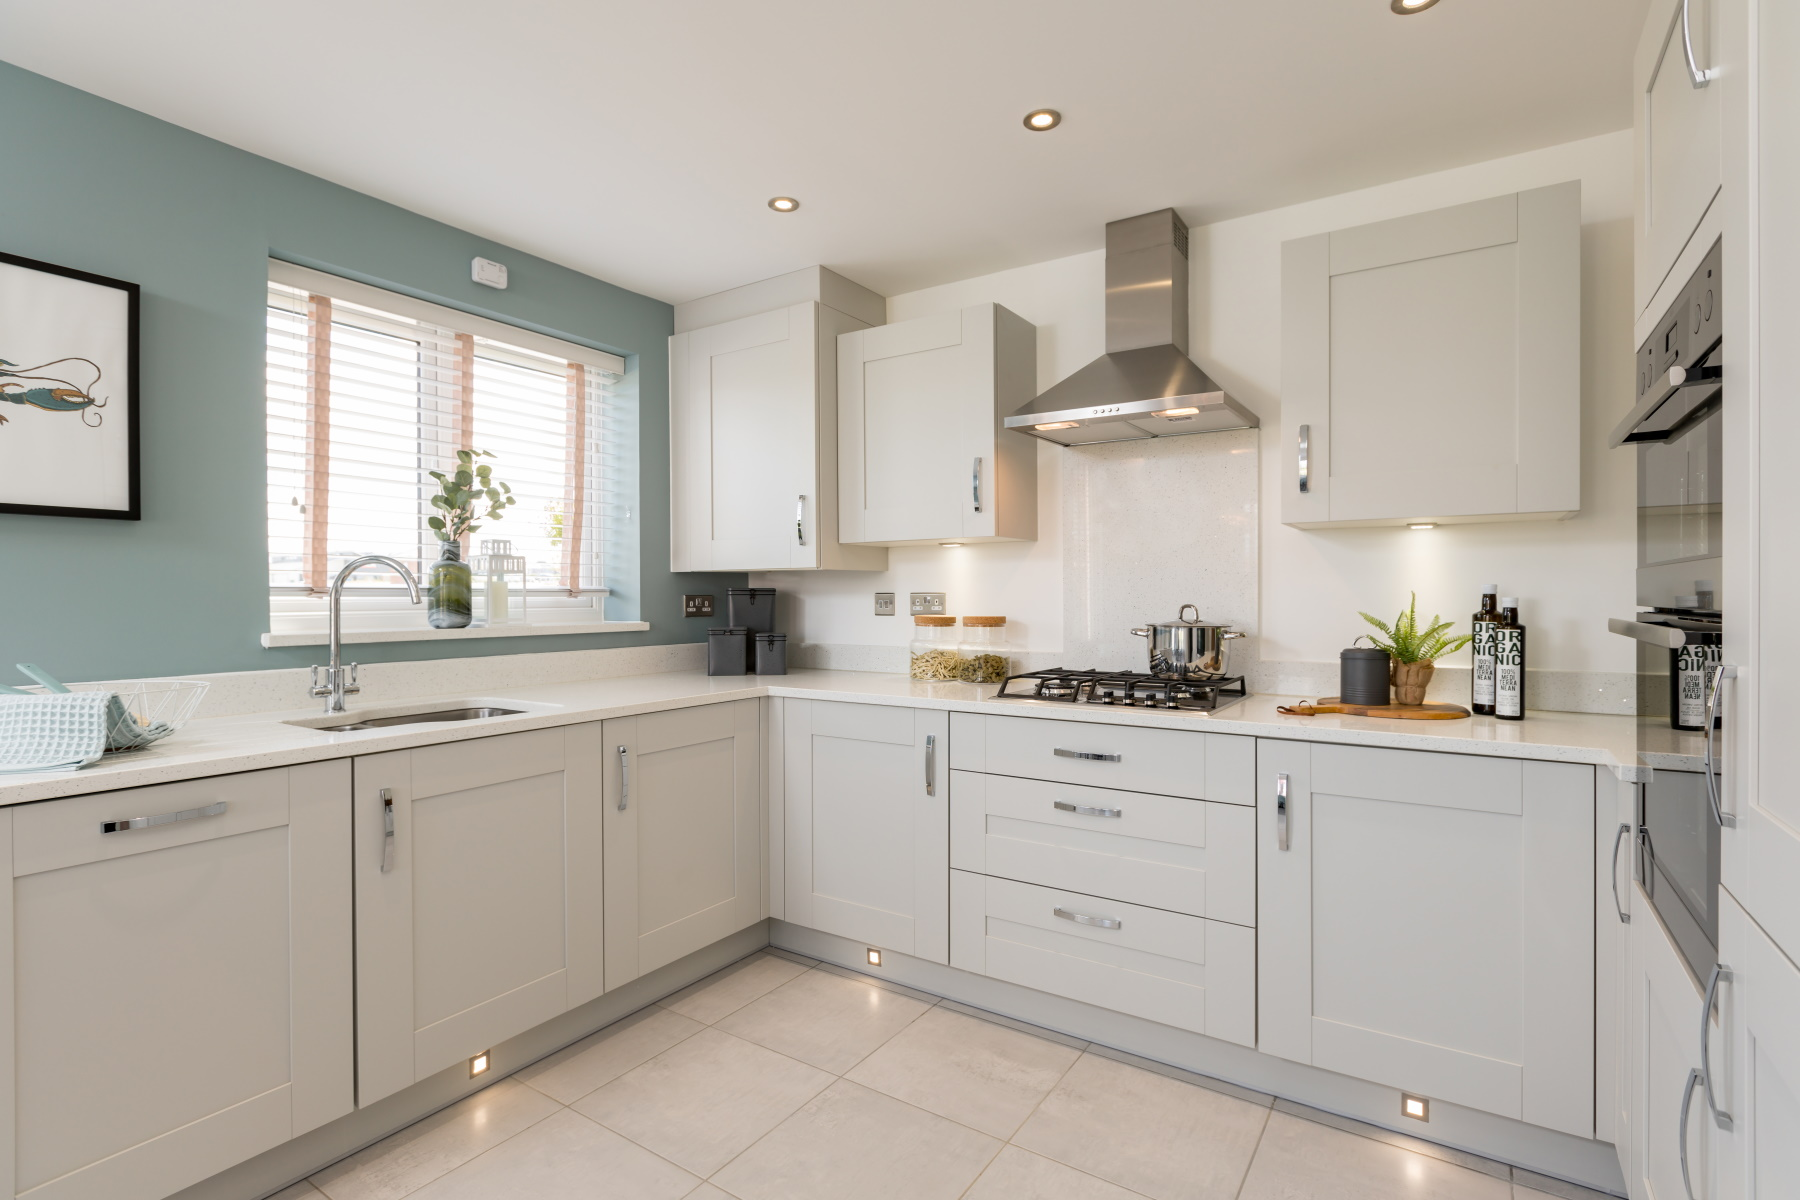 TW Exeter - Mountbatten Mews - Easedale example kitchen